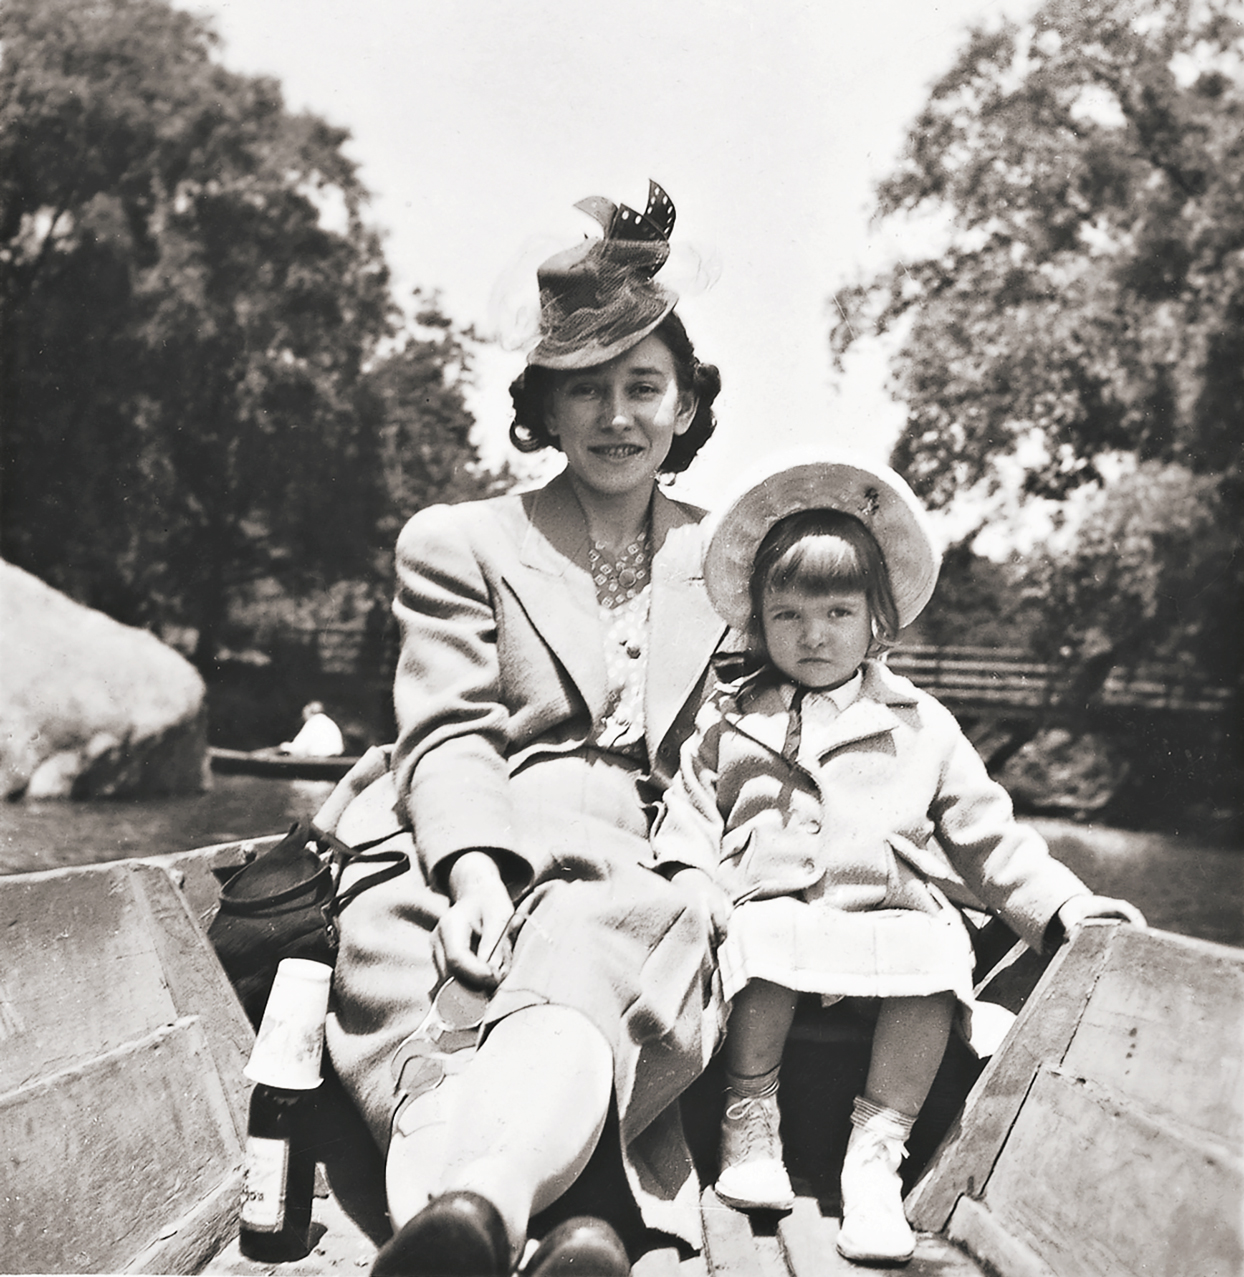 Martha and her mom on a boat in Central Park